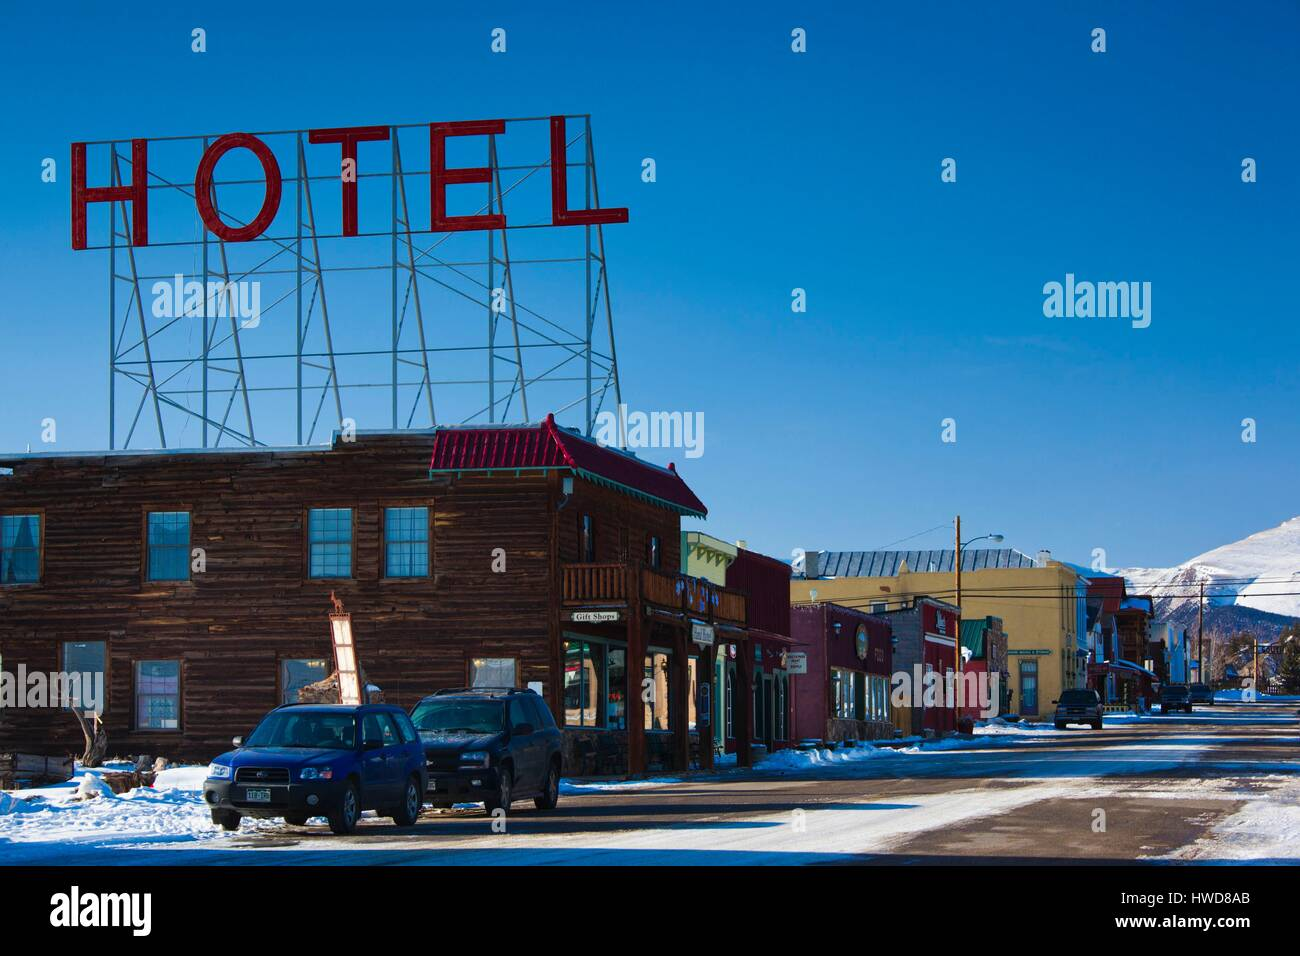 United States, Colorado, Fairplay, hotel sign - Stock Image